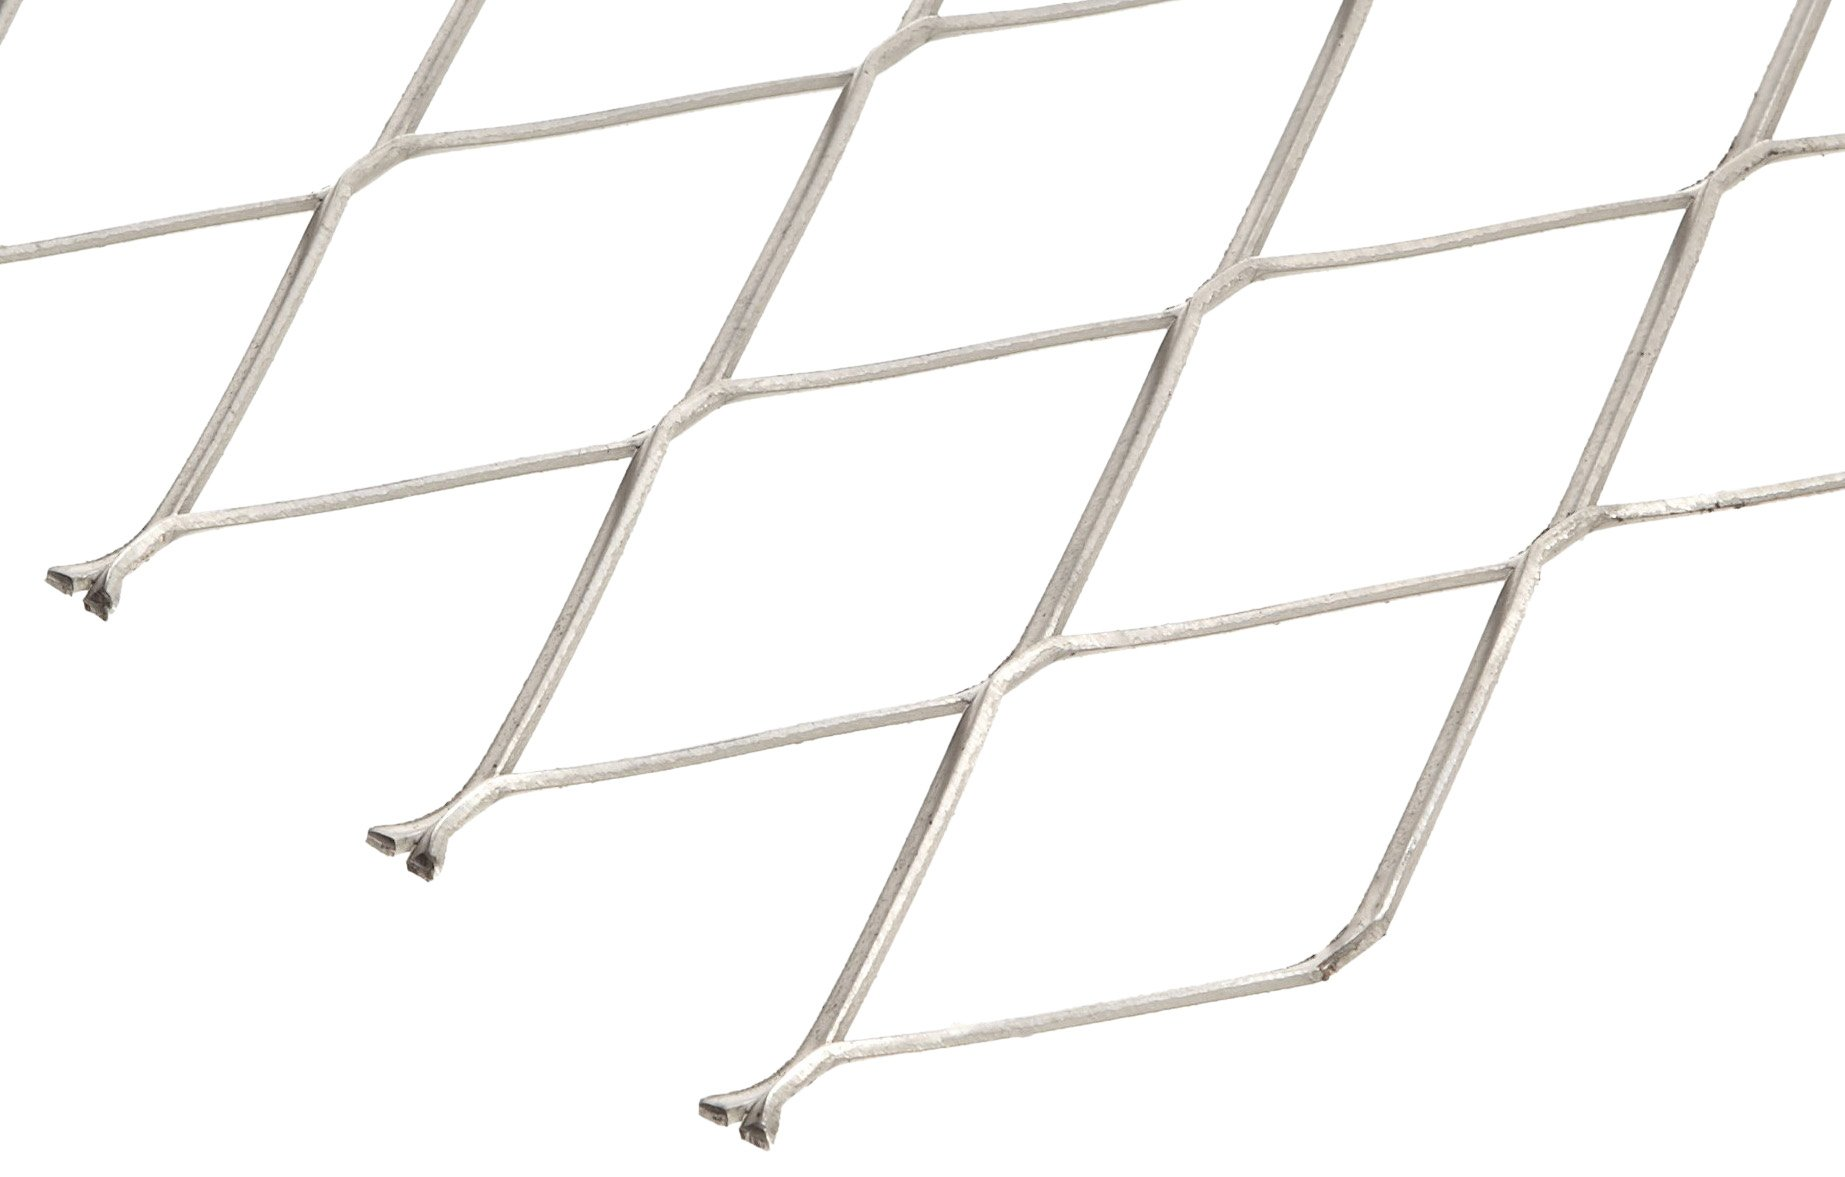 304 Stainless Steel Raised Expanded Sheet, Unpolished (Mill) Finish, 24'' Width, 24'' Length, 1.33'' SWD x 3.00'' LWD Opening, 16 Gauge